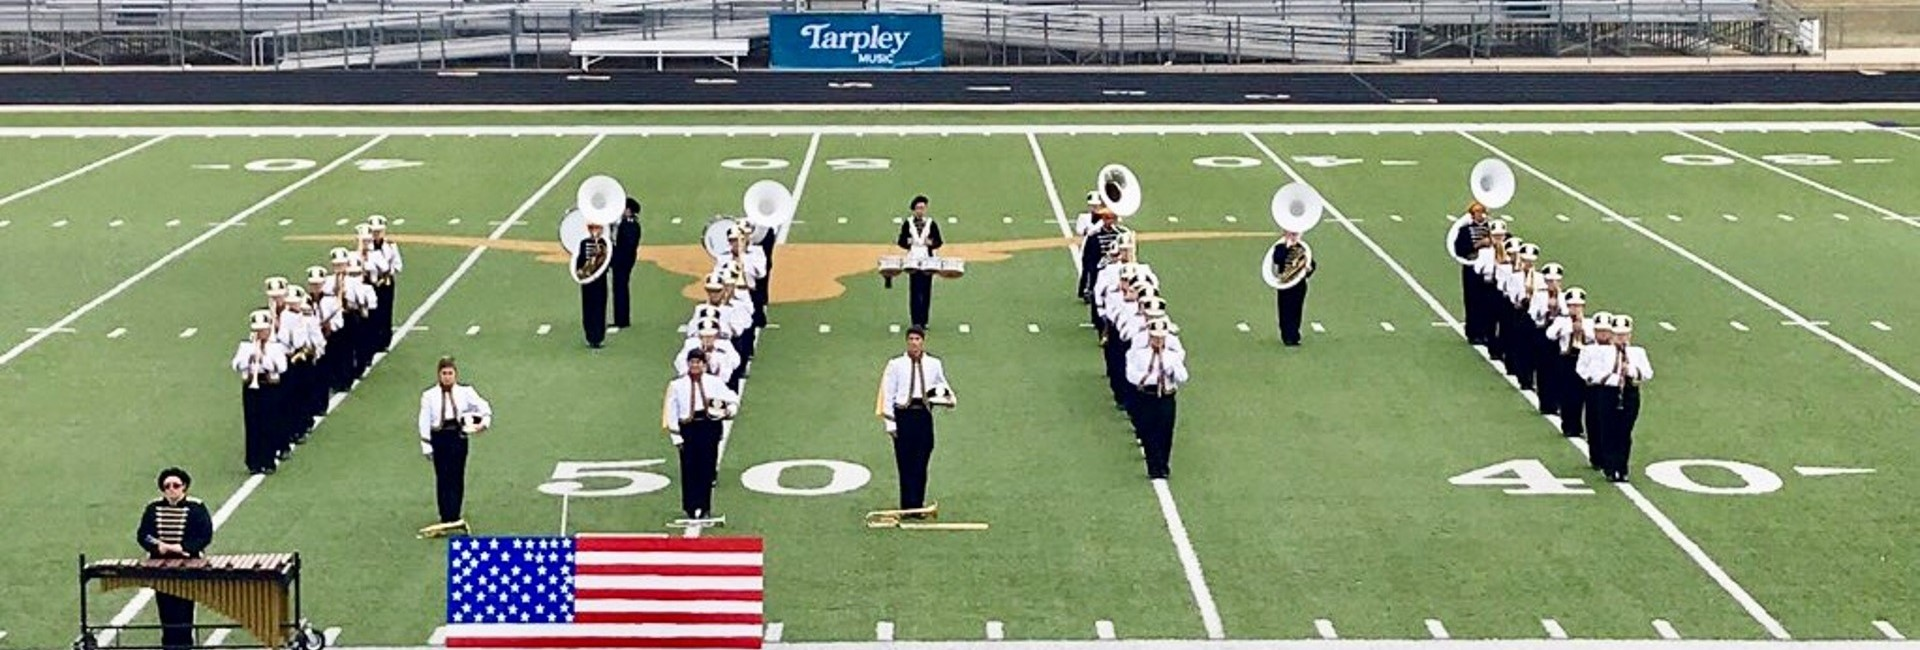 Mighty Mountaineer Marching Band Score SUPERIOR - Headed to STATE Competition